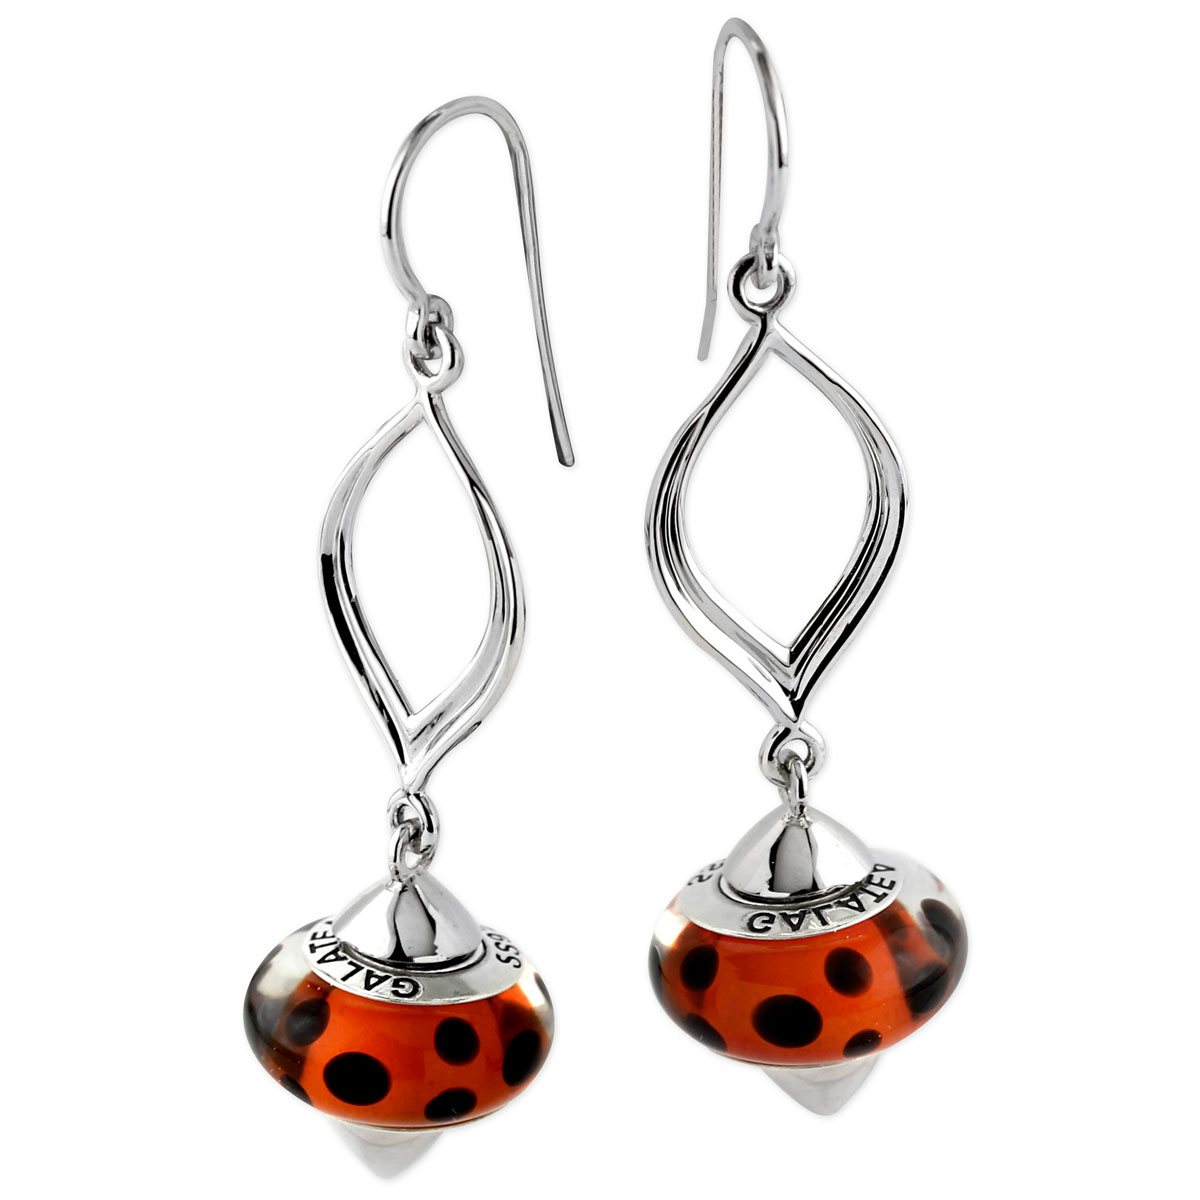 342111-Galatea Interchangeable Oval Earrings with Red & Black Beads